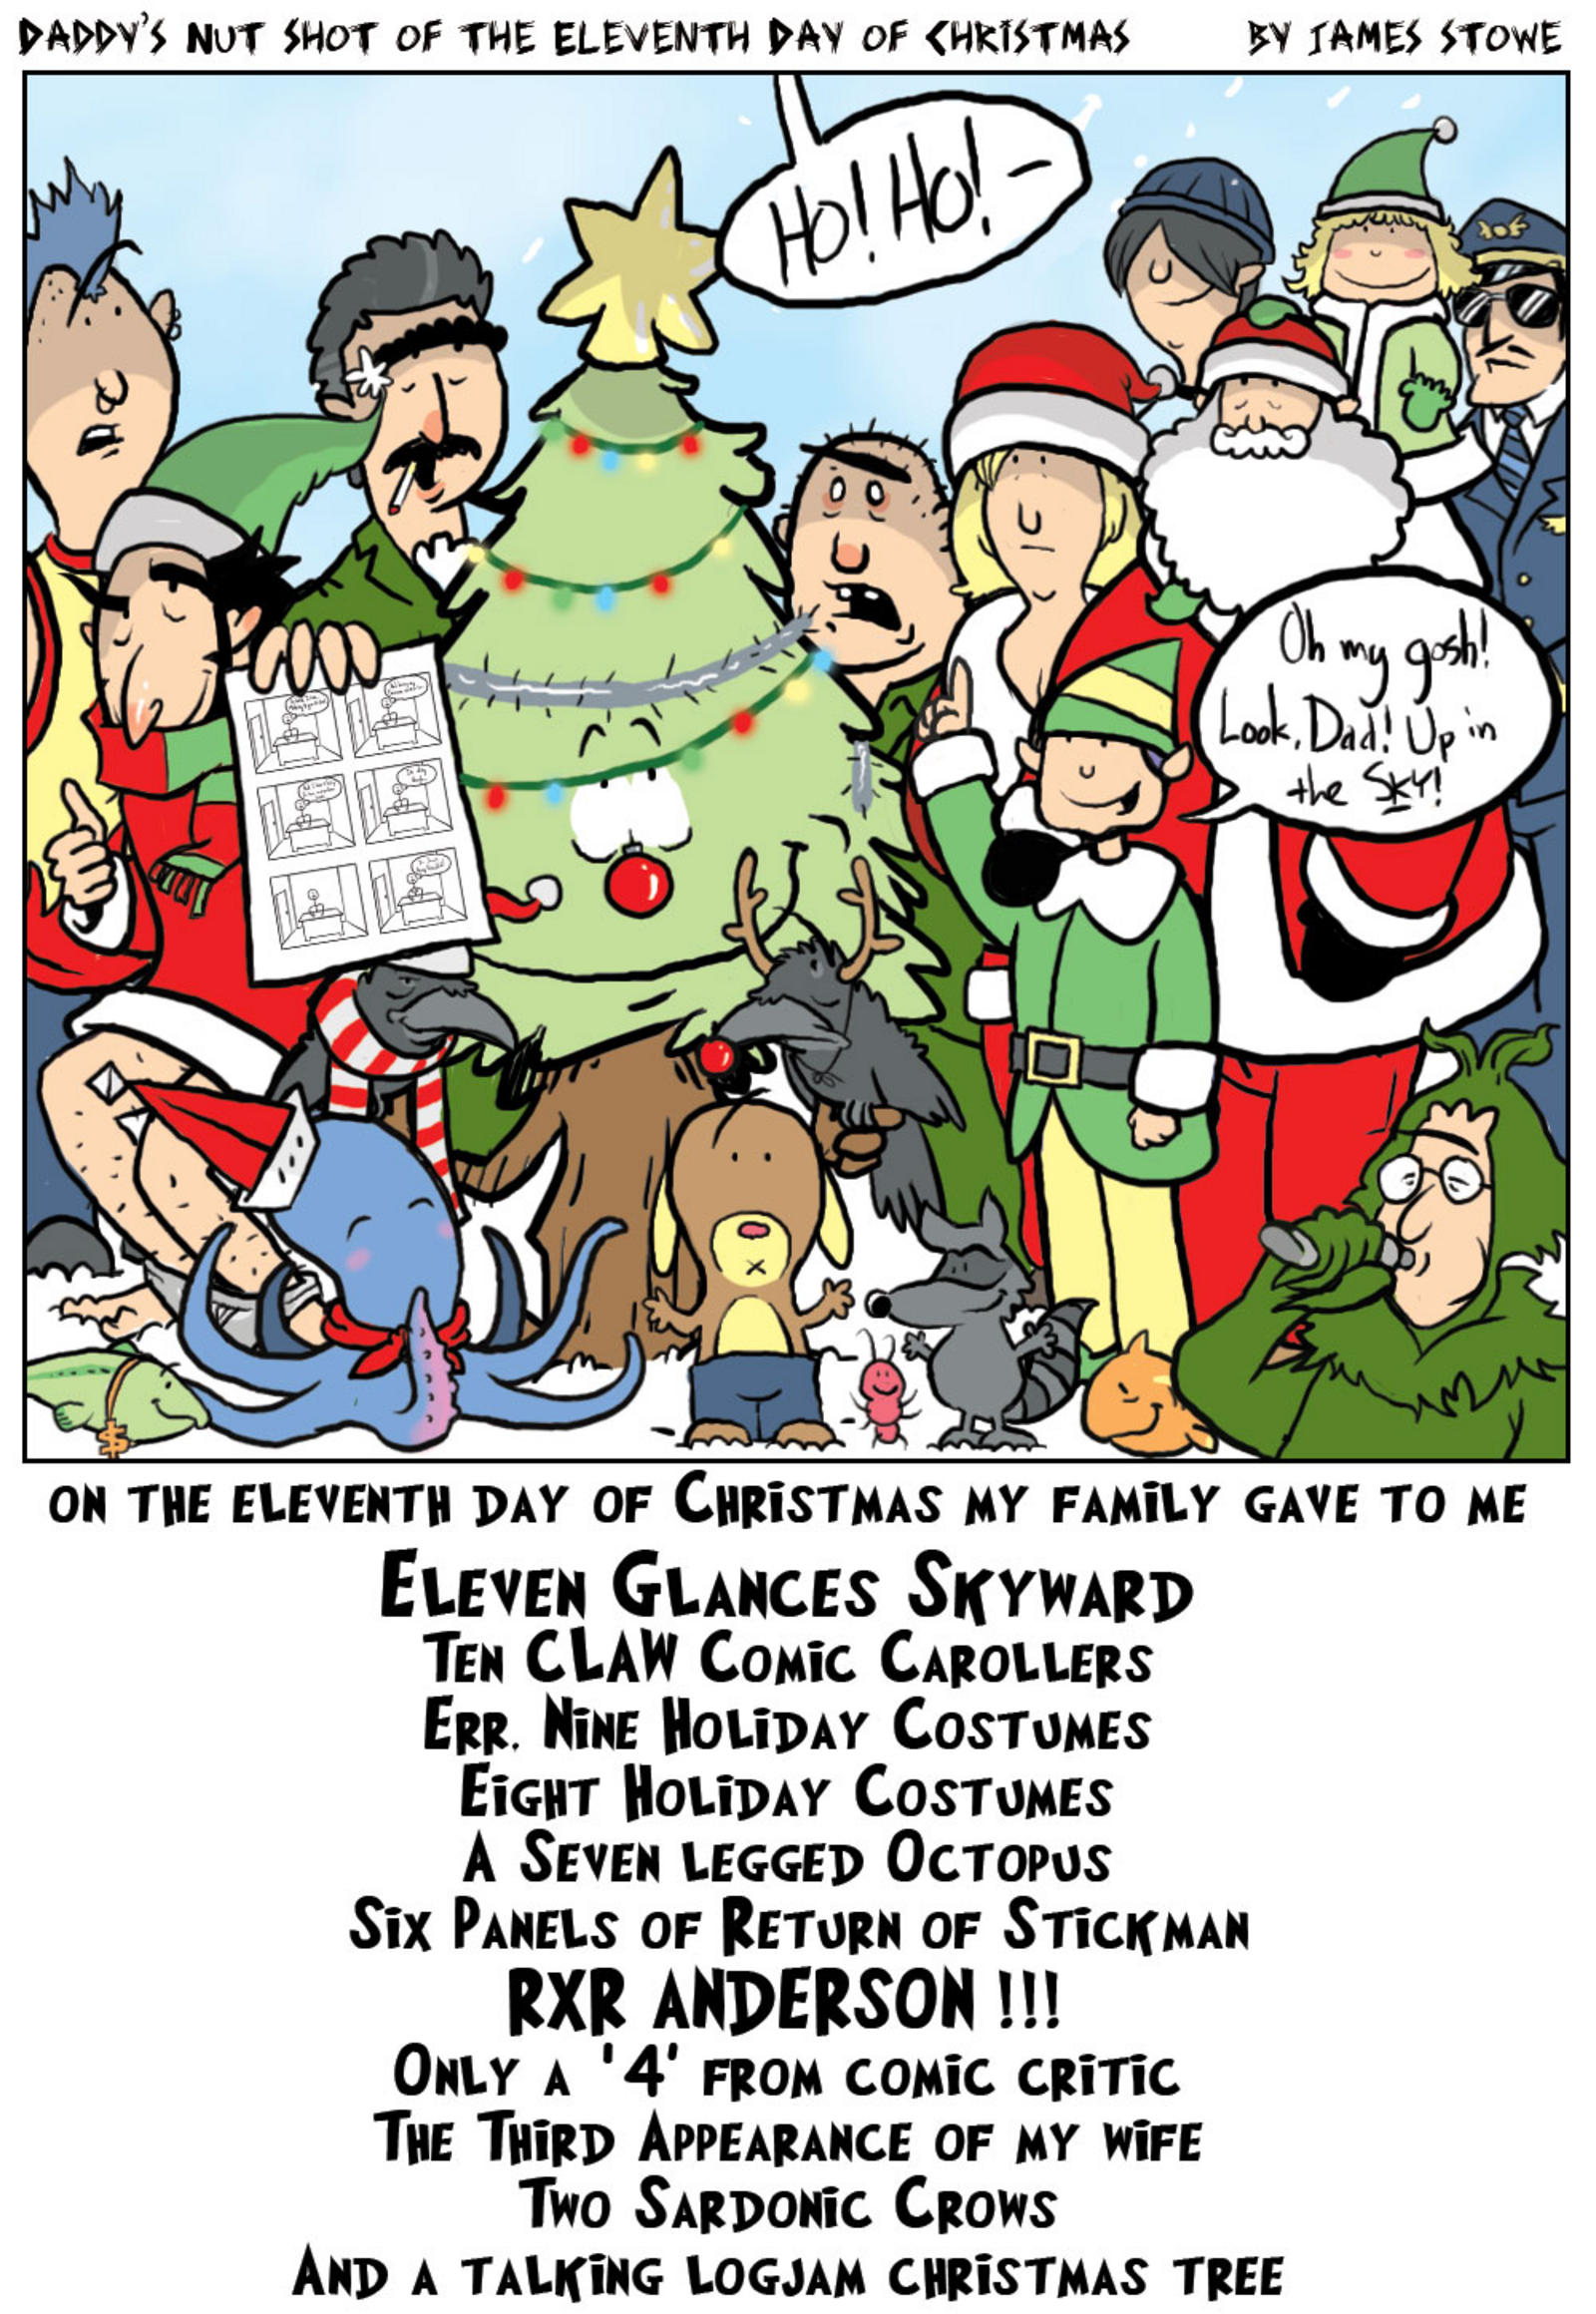 Panels clipart community resource Comics Nutshot Christmas Daddy's (DNOTD